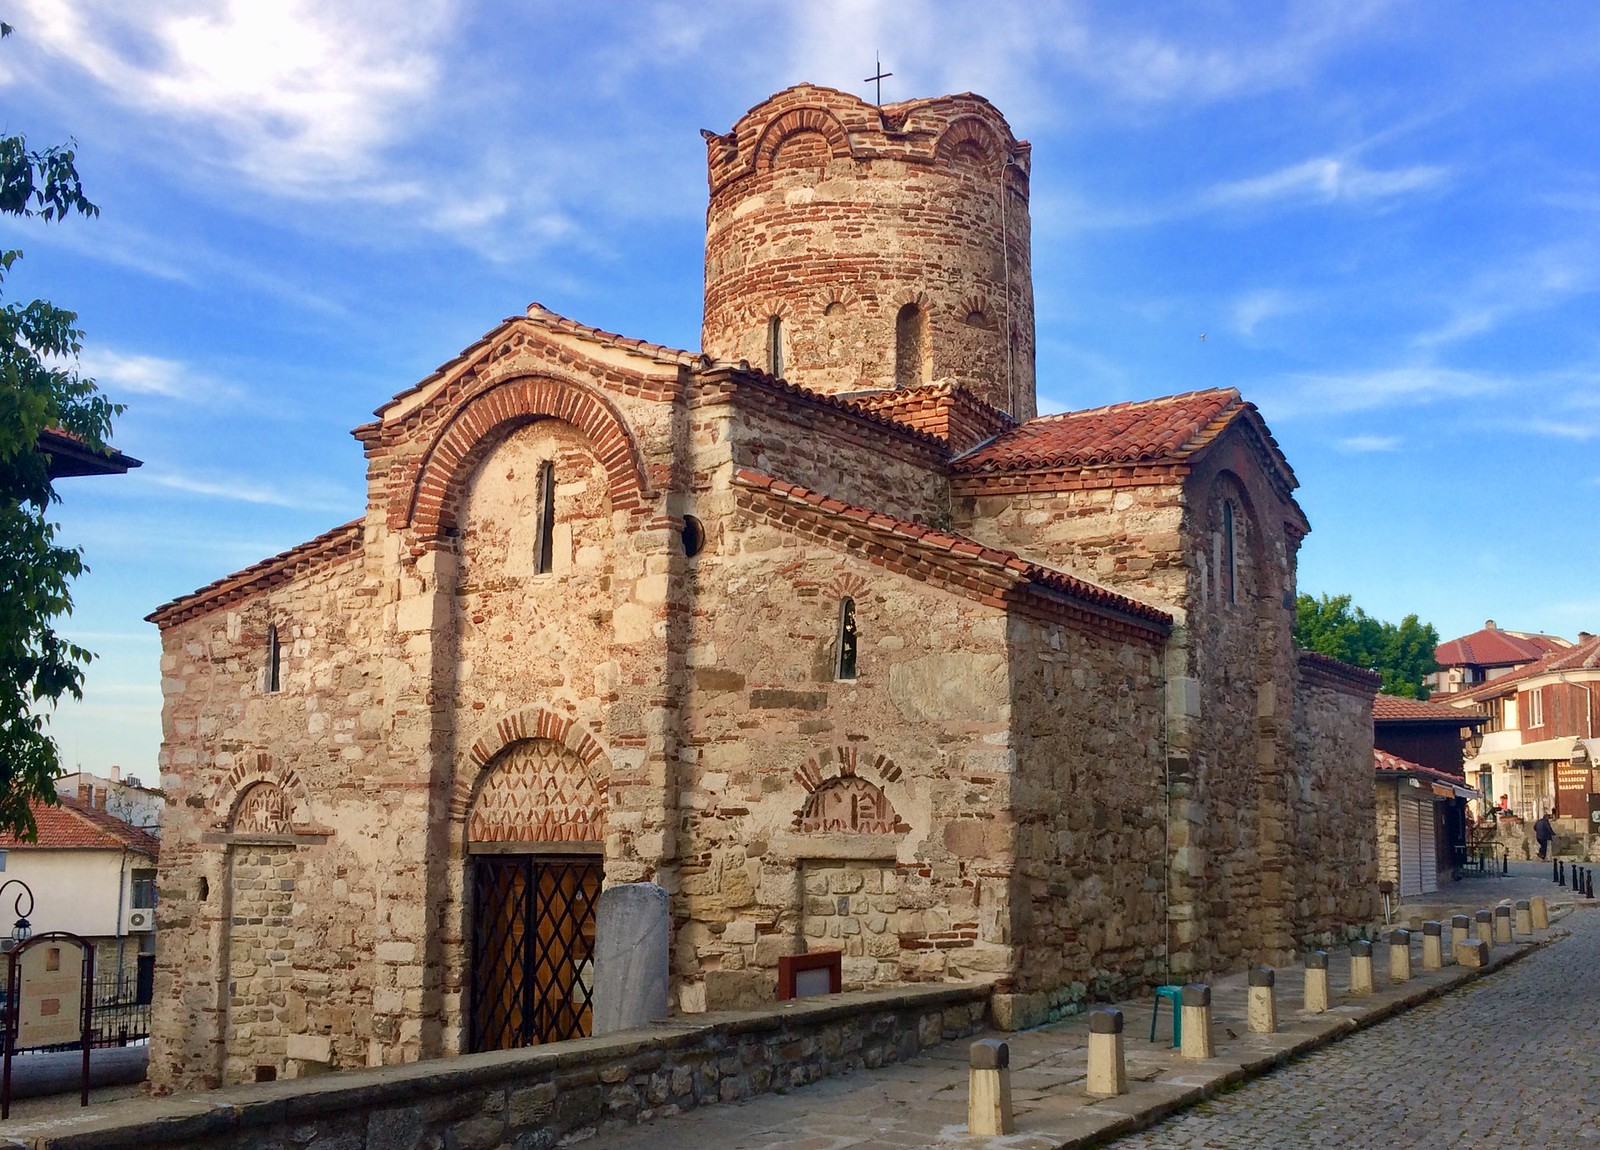 201705 - Balkans - Church of Christ Pantocrator - 21 of 40 - Ancient City of Nessebar - Burgas, May 24, 2017